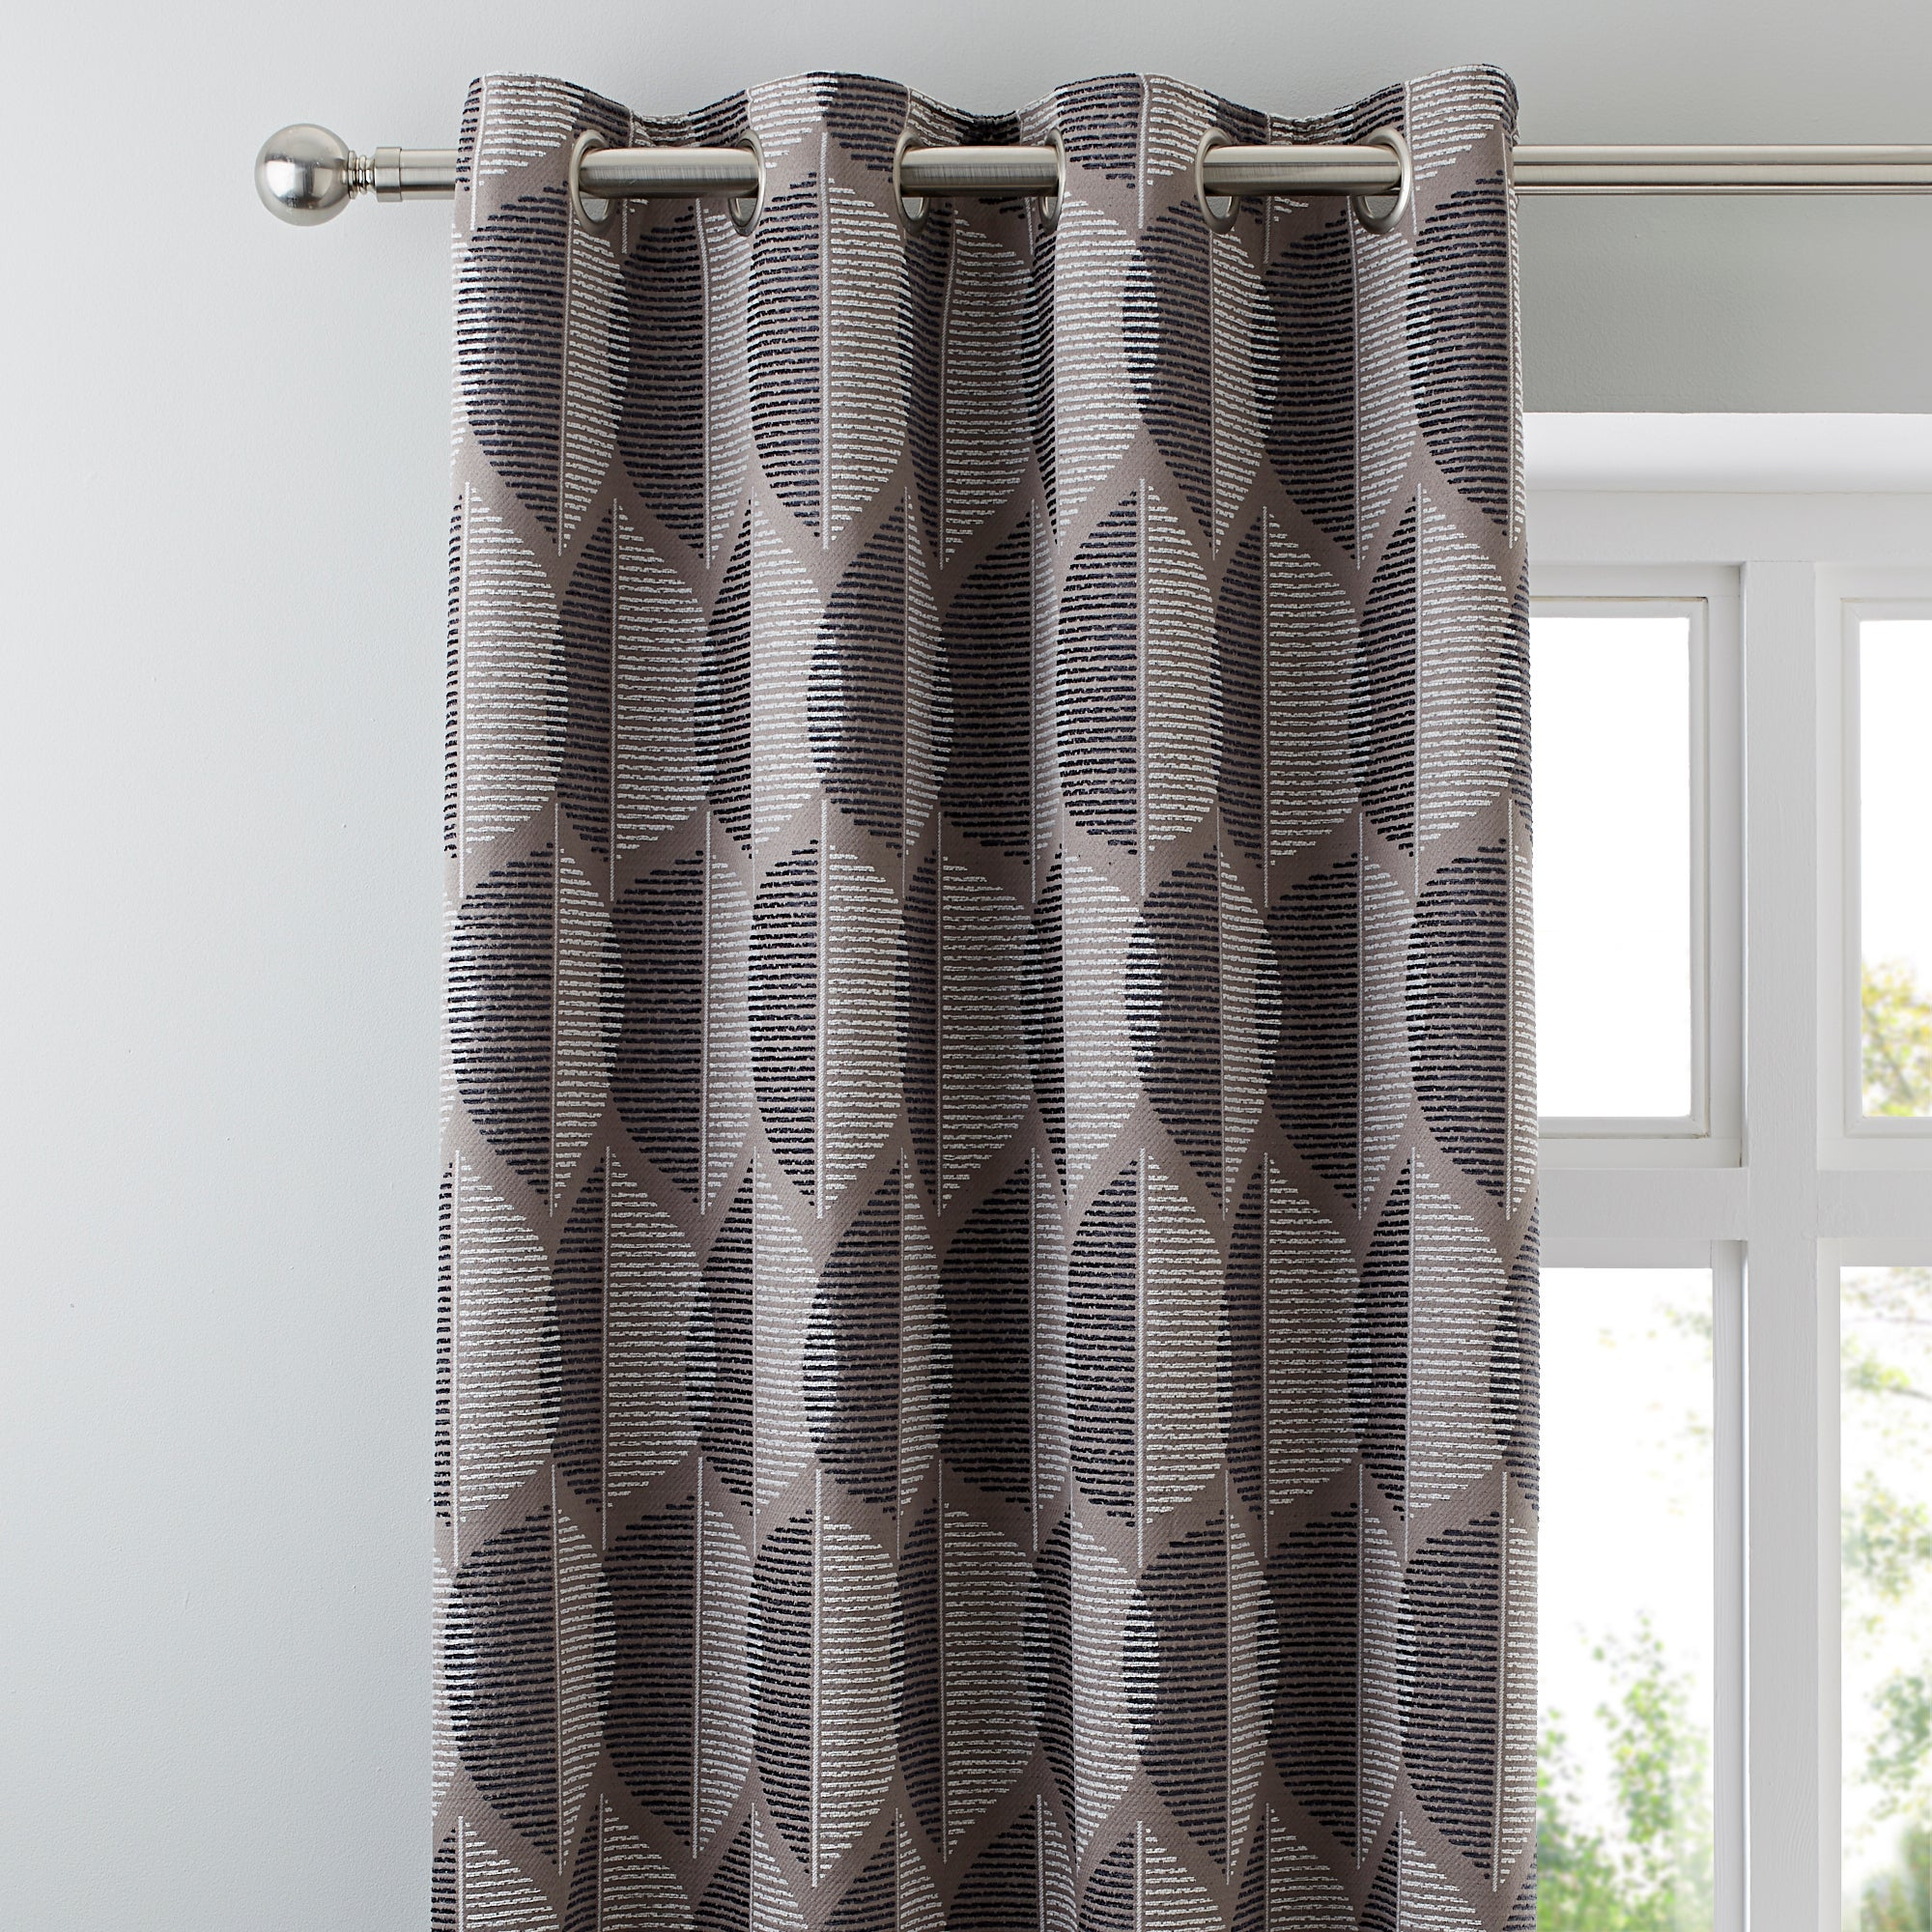 Black Curtains black curtains cheap : Black curtains | Shop for cheap Curtains & Blinds and Save online